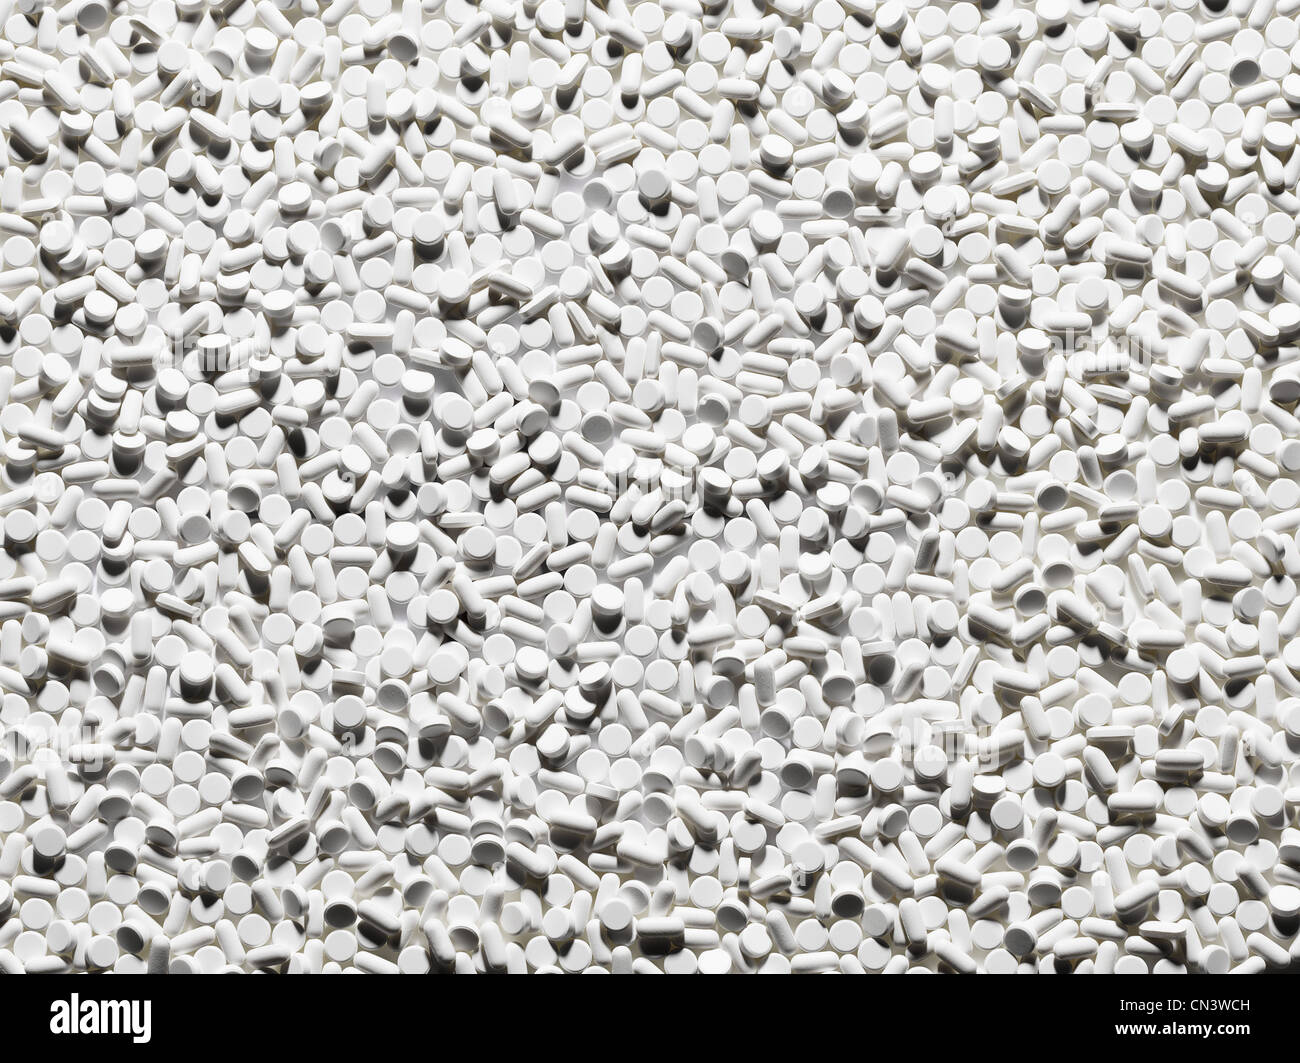 Large group of white tablets - Stock Image